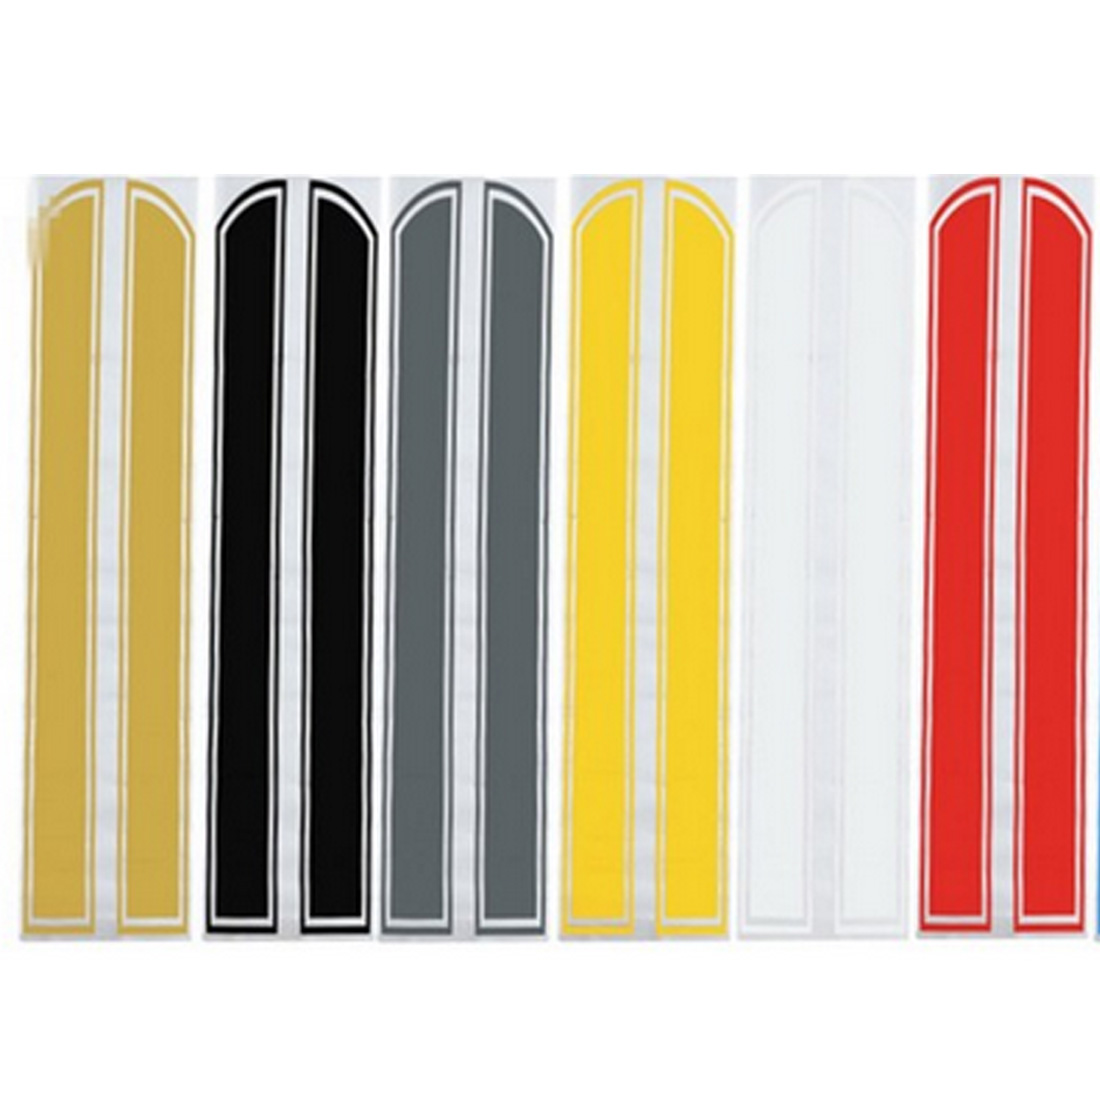 Dewtreetali Universal 130cm x 24cm Car Hood Scratched Stickers Engine Cover Styling Reflective Decal Stripe Vinyl DIY Decoration